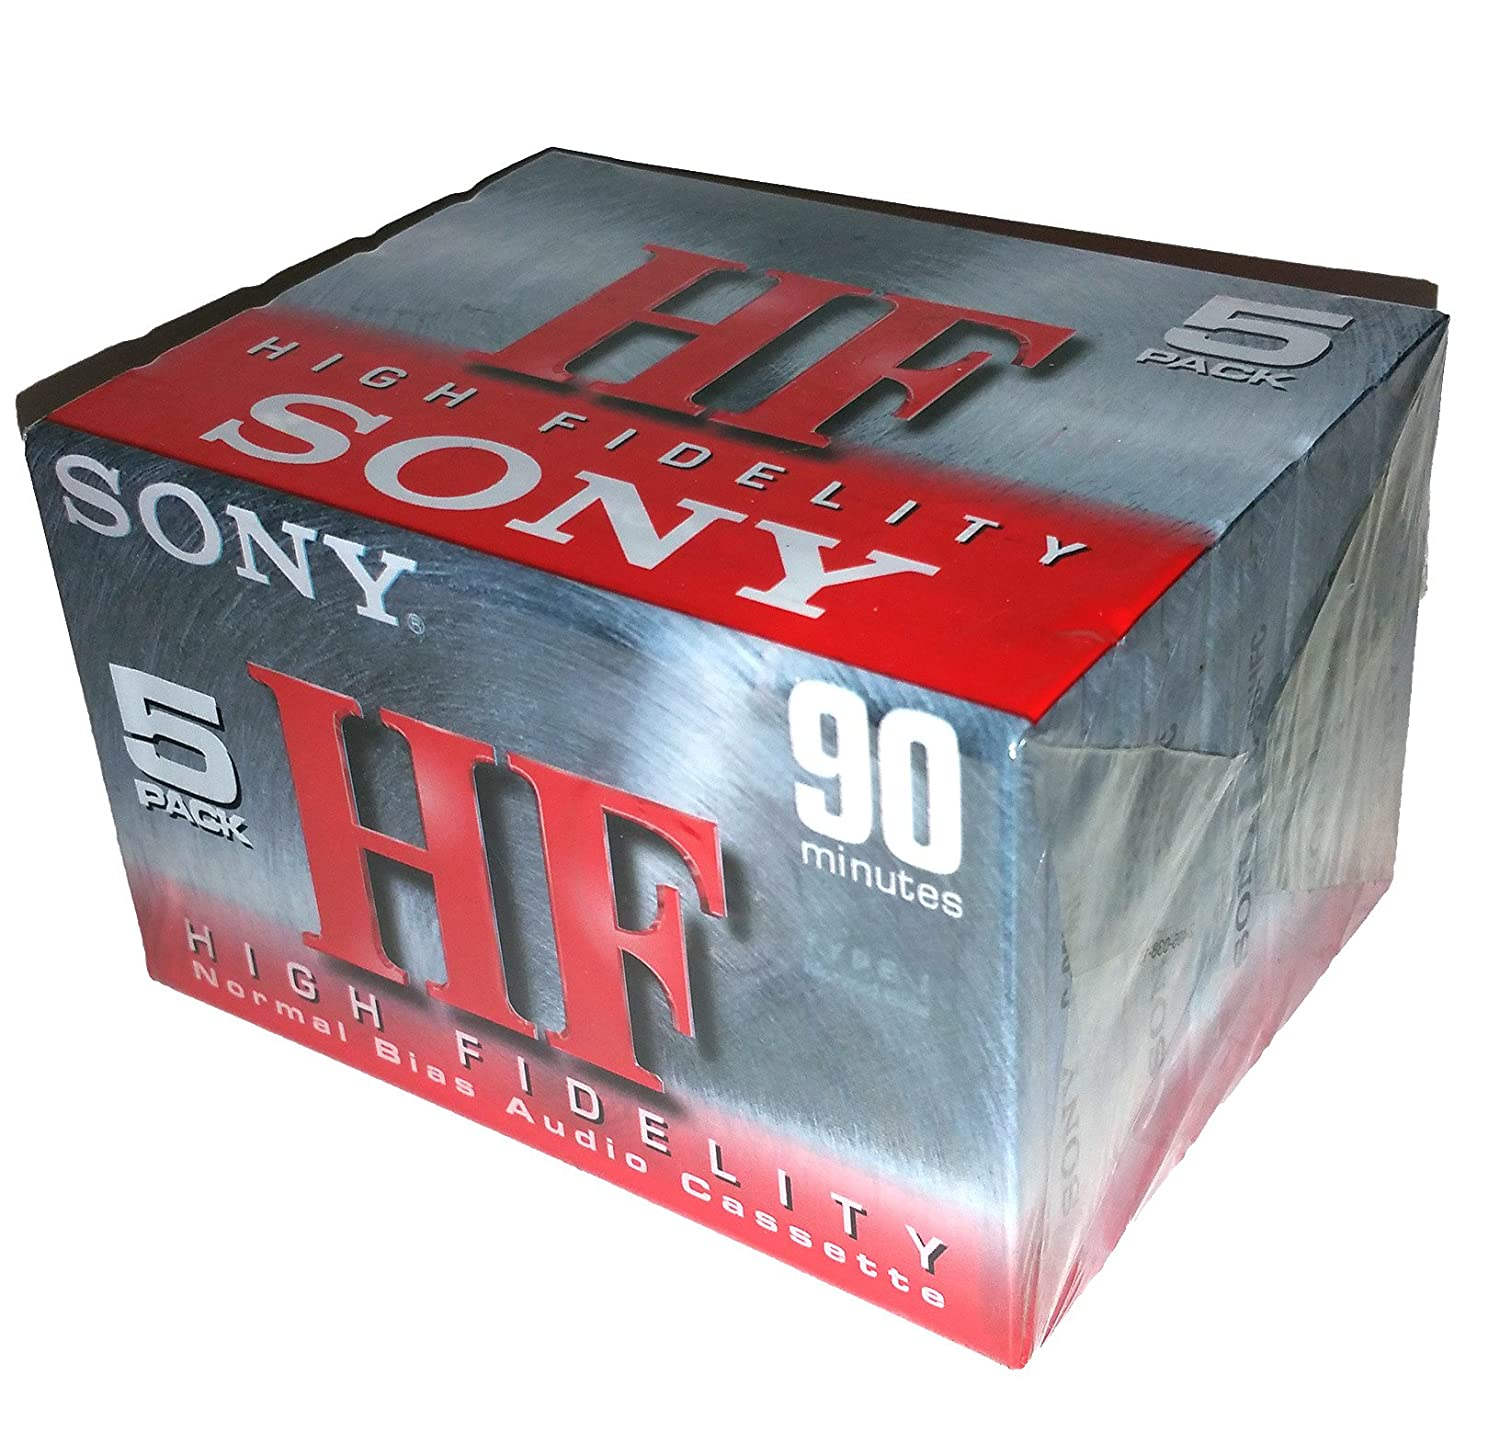 Sony HF 90 High Fidelity Normal Bias Blank Audio Cassettes C-90HFC - 5 Pack